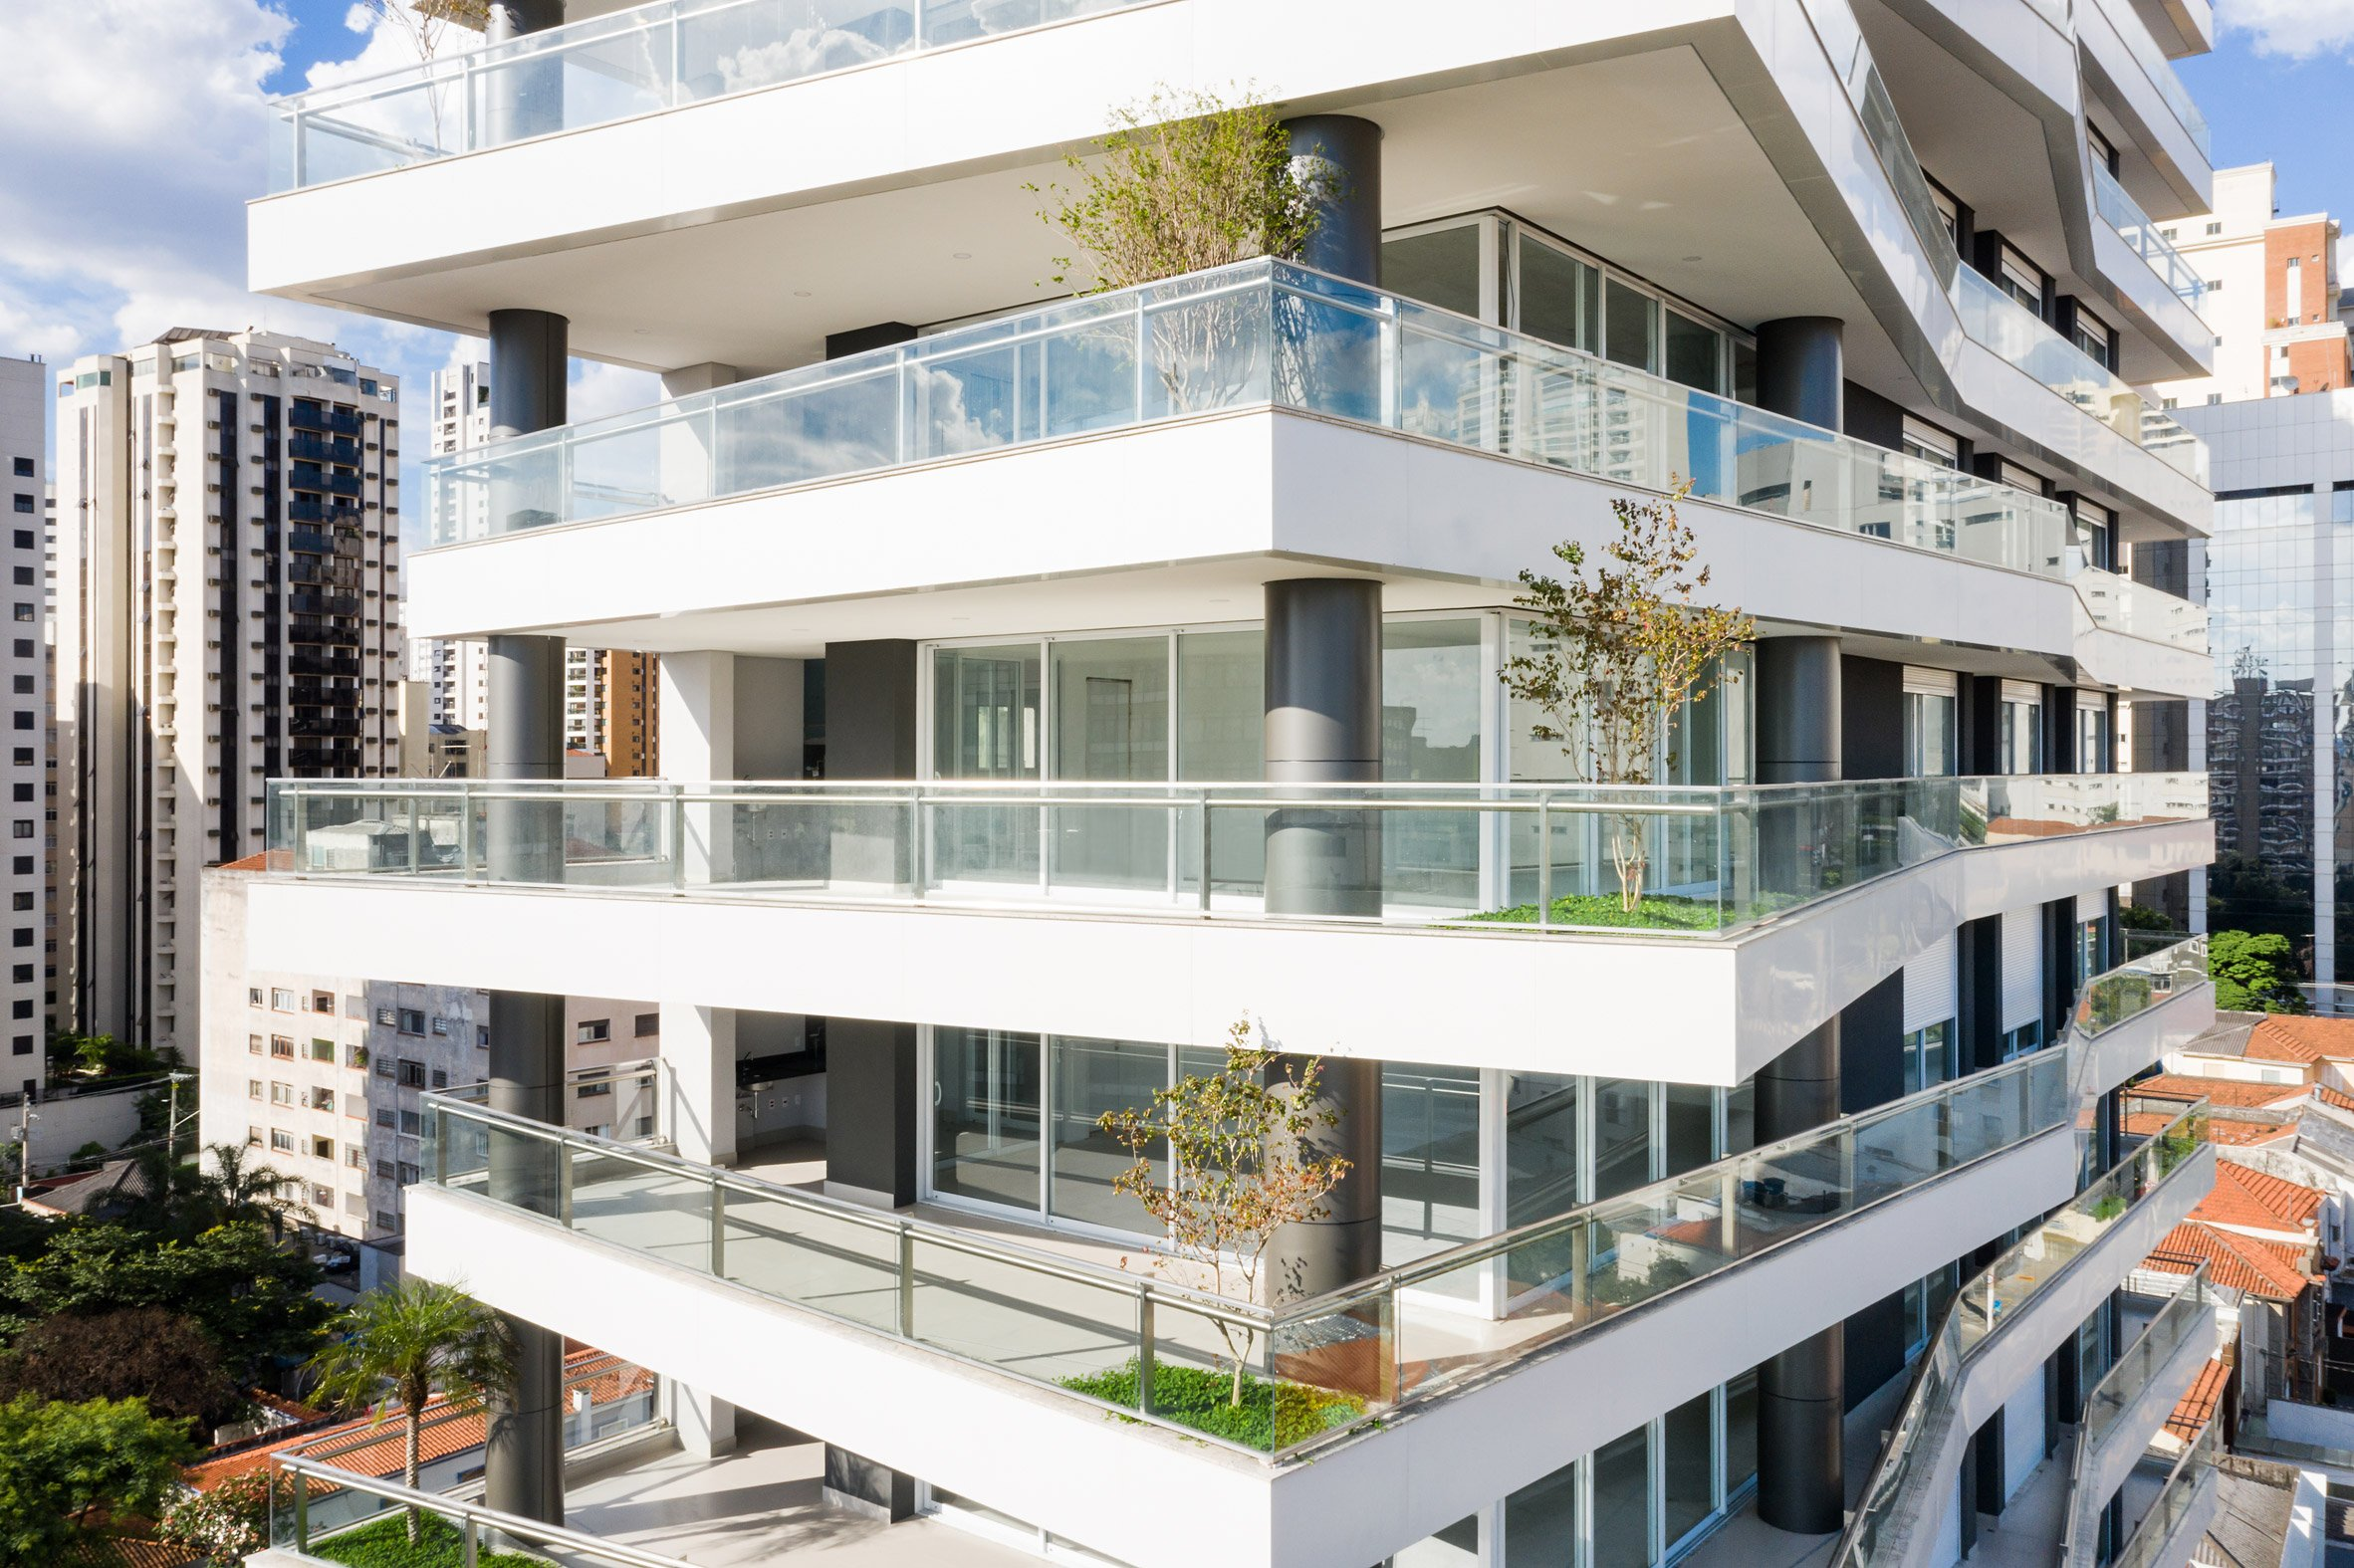 Green roofs make the building more sustainable